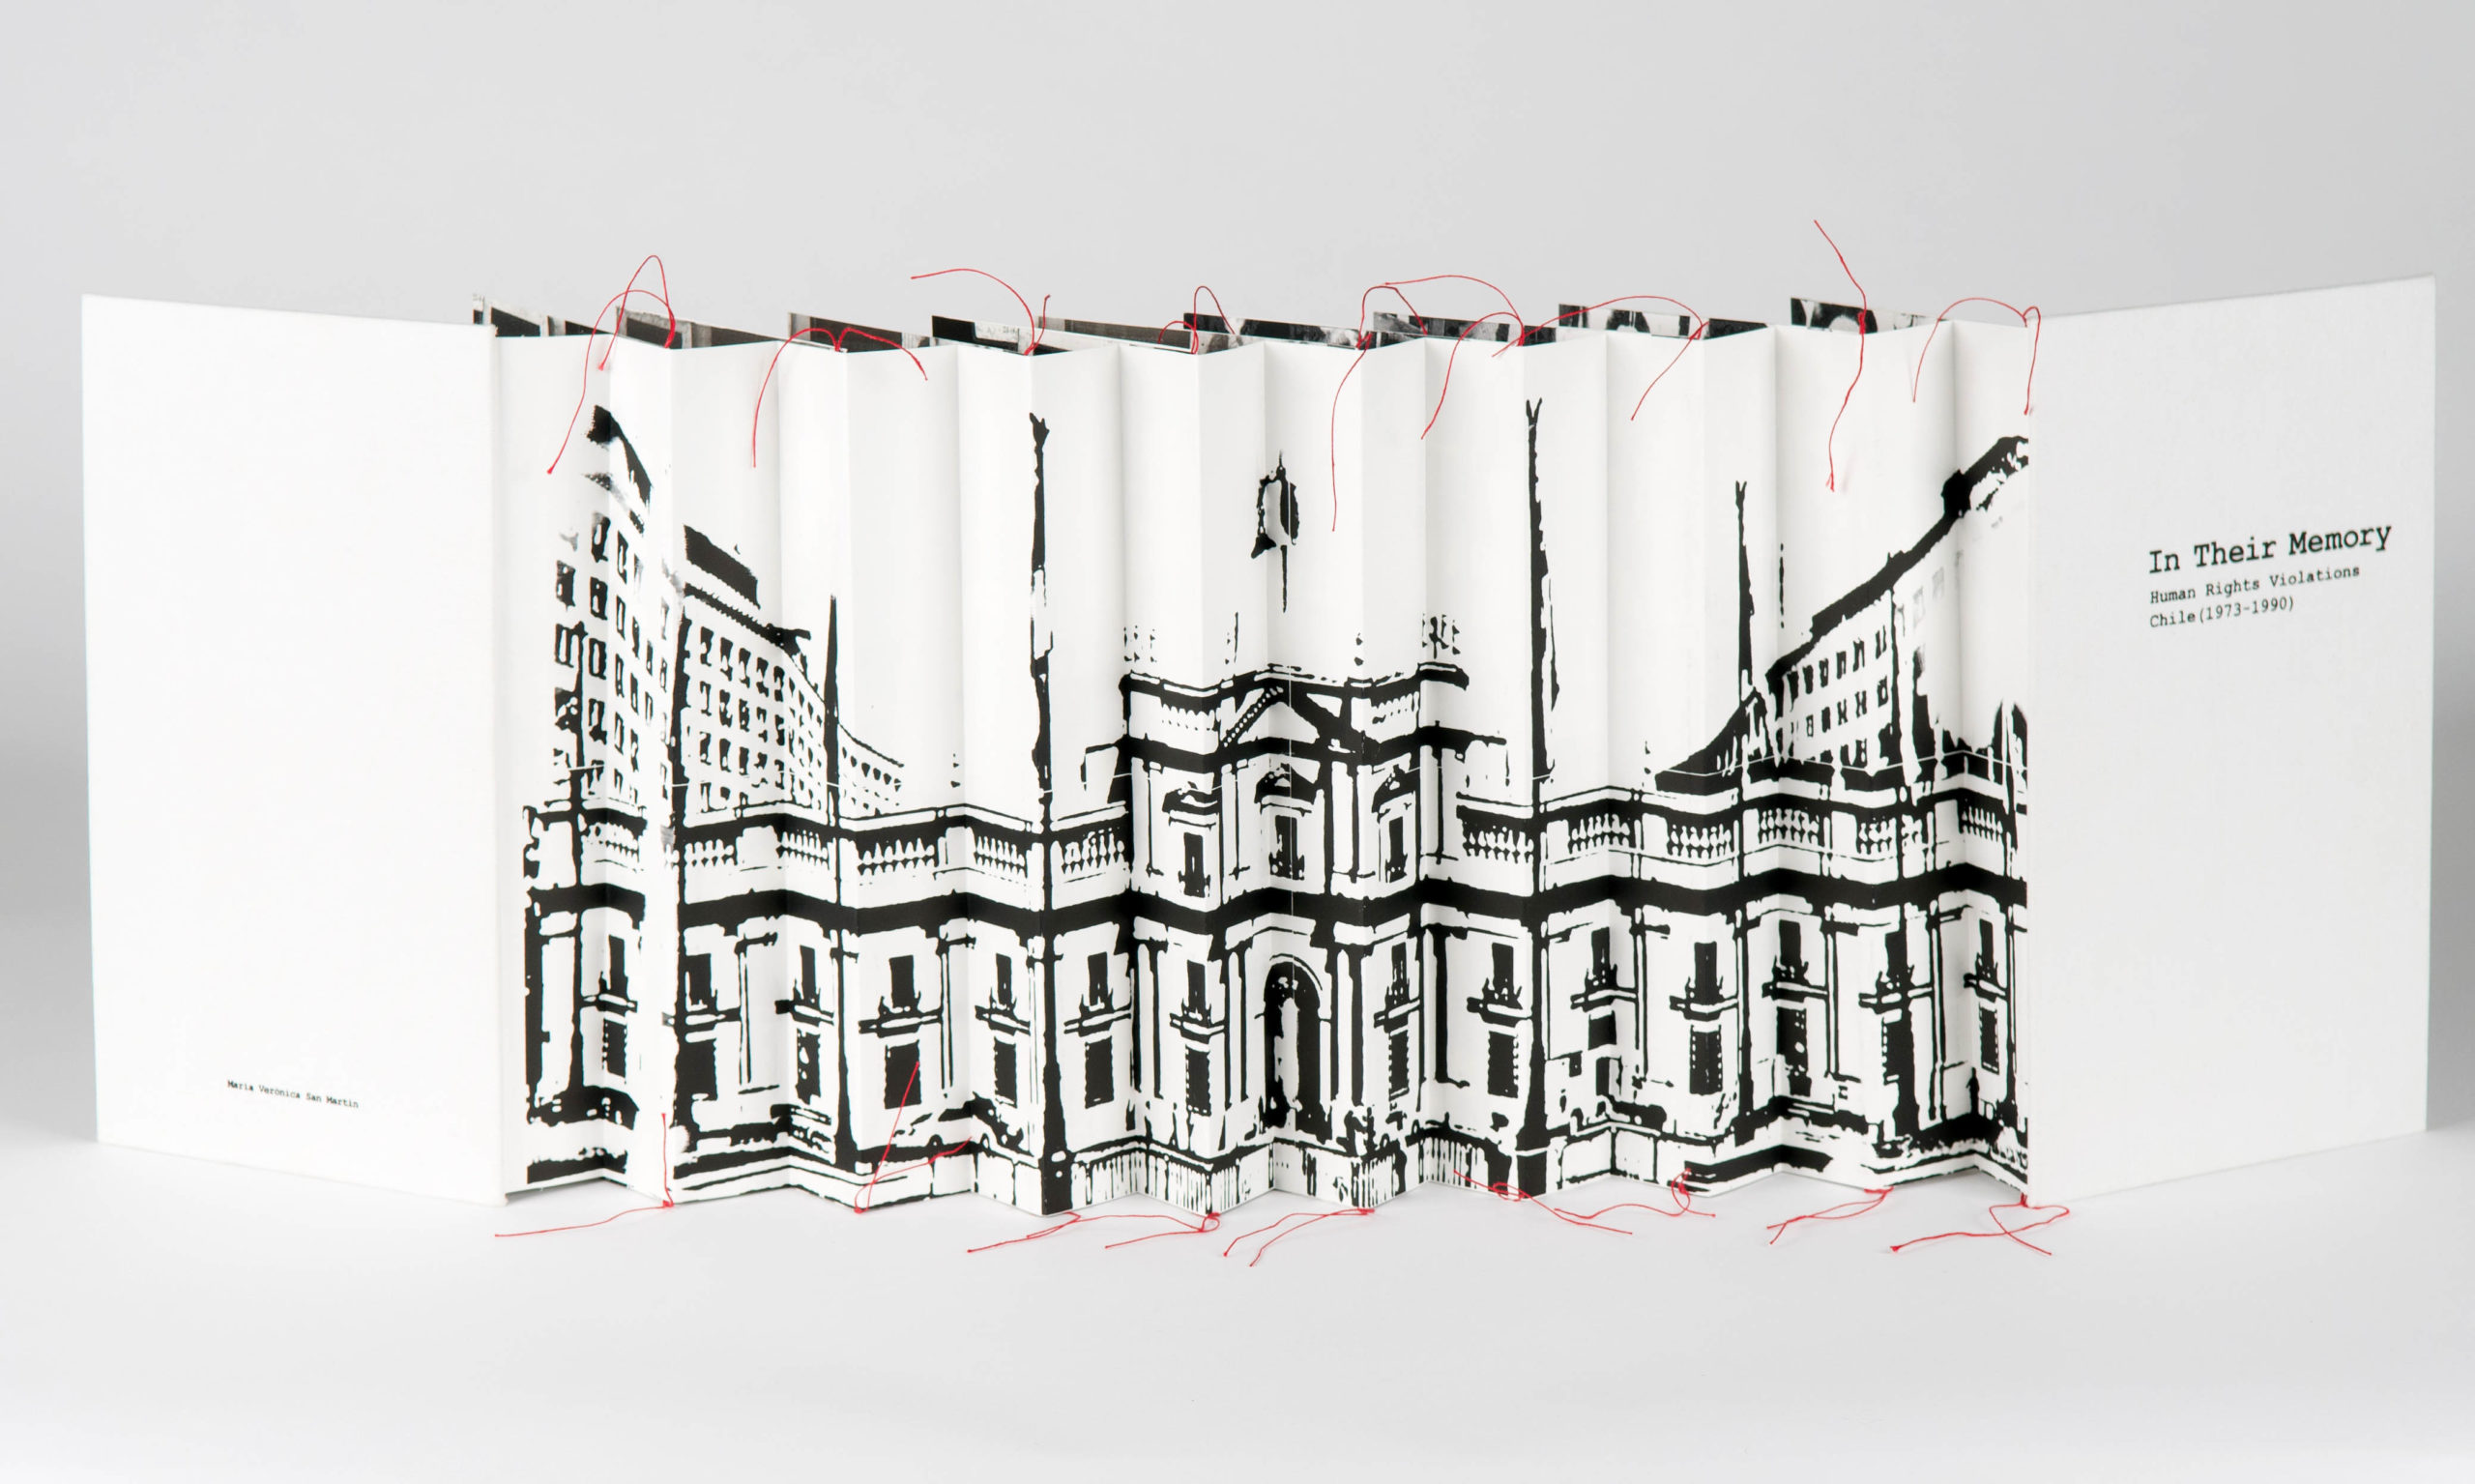 capitol of chile across a unfolded accordion spine